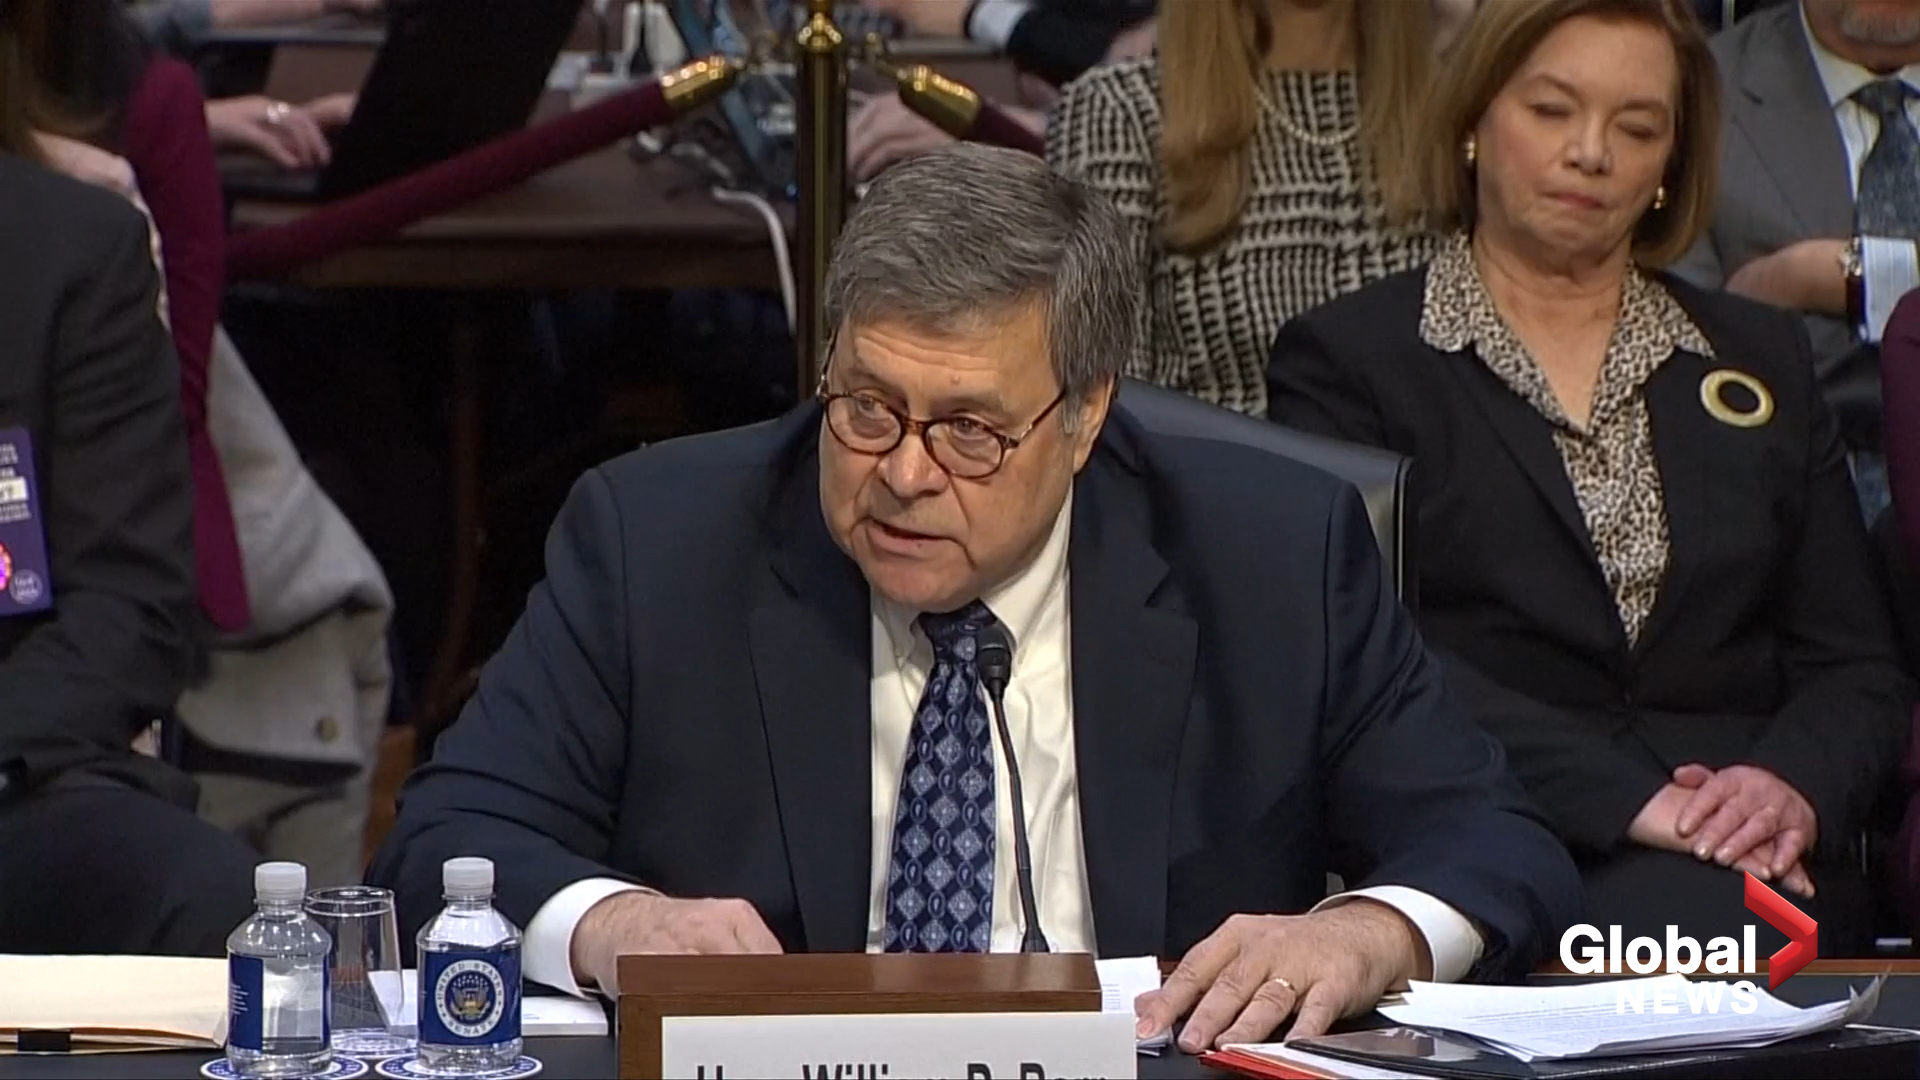 William Barr's Mueller cover-up reveals America's delusional dreamland about democracy | Will Bunch